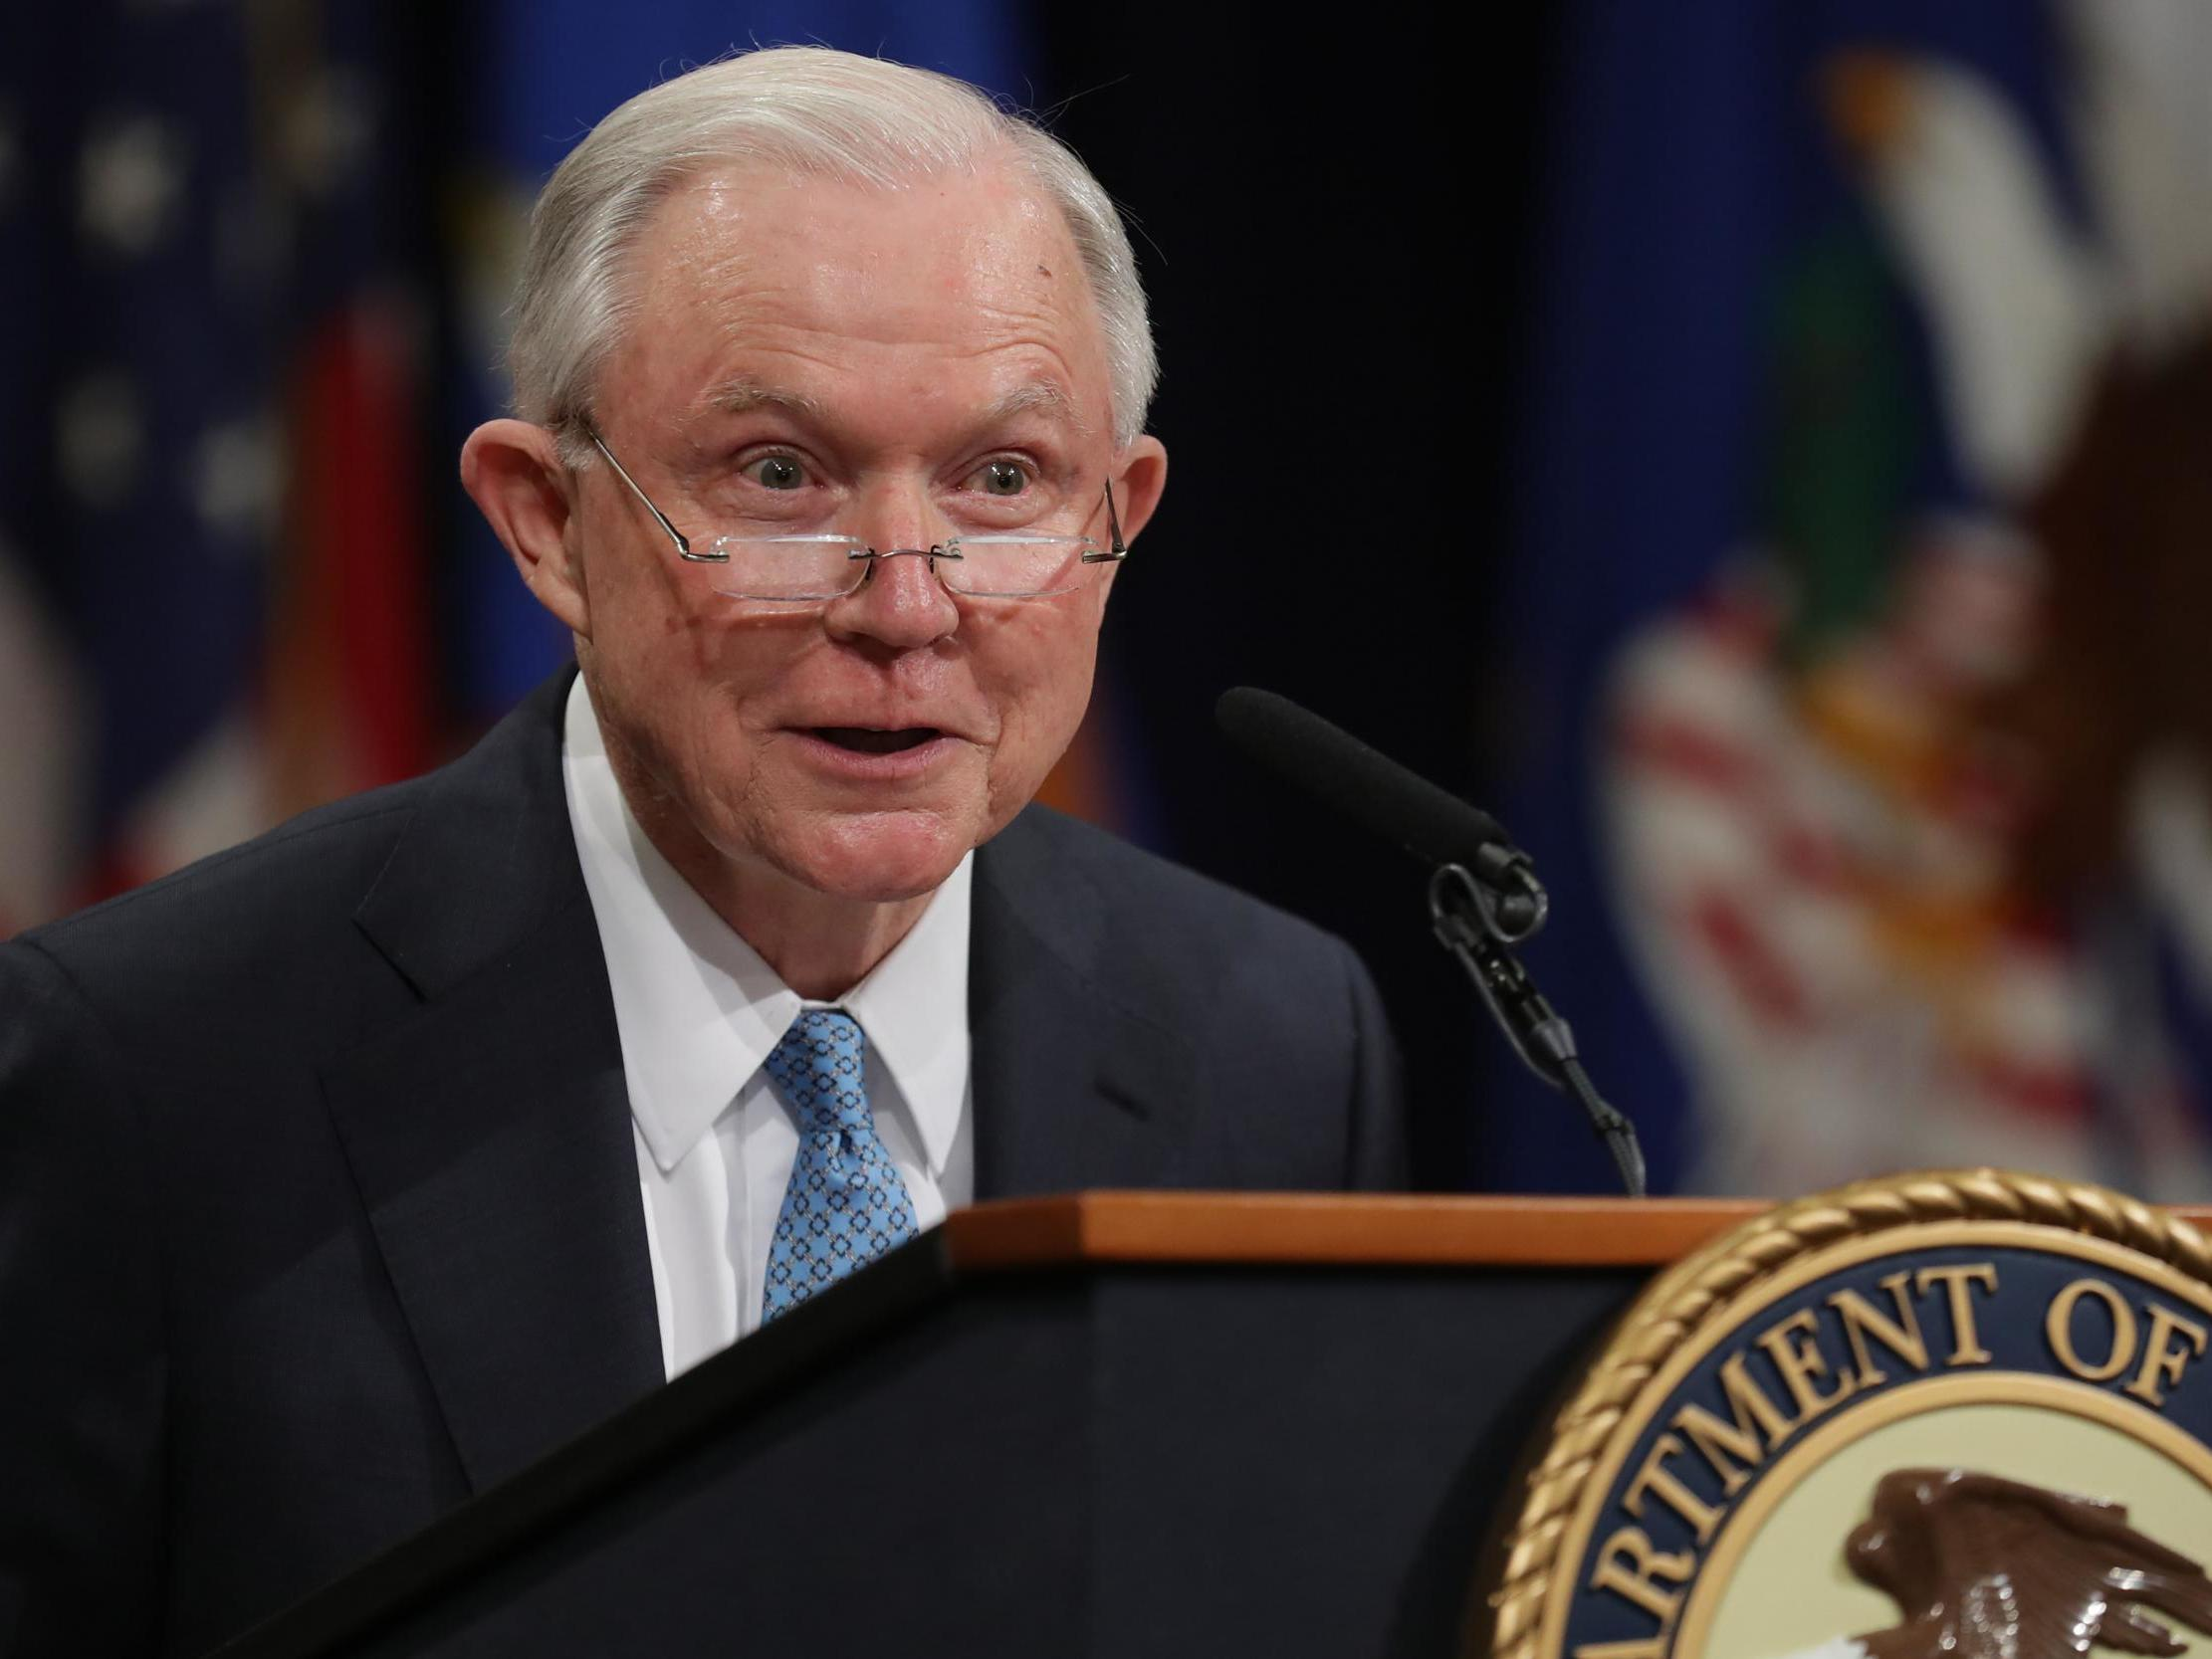 Trump's former attorney general Jeff Sessions hits back at president for endorsing his Senate rival